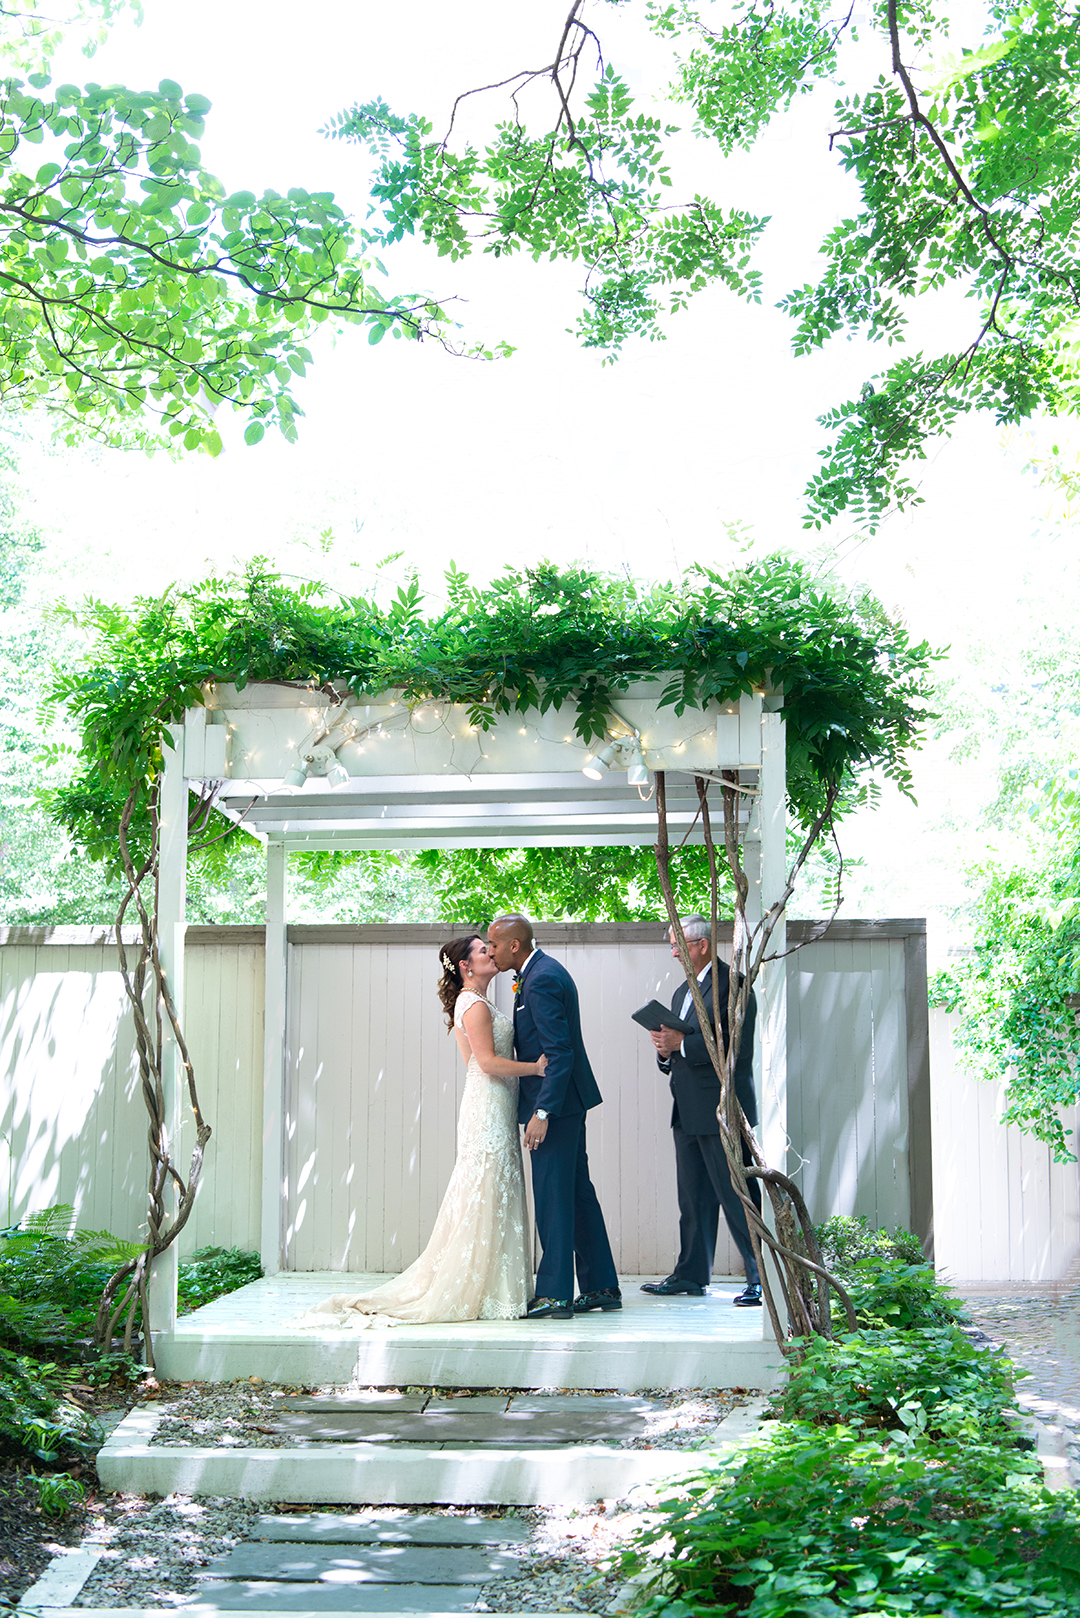 Micro-elopement wedding ceremony in the garden at Chase Court in Baltimore, Maryland